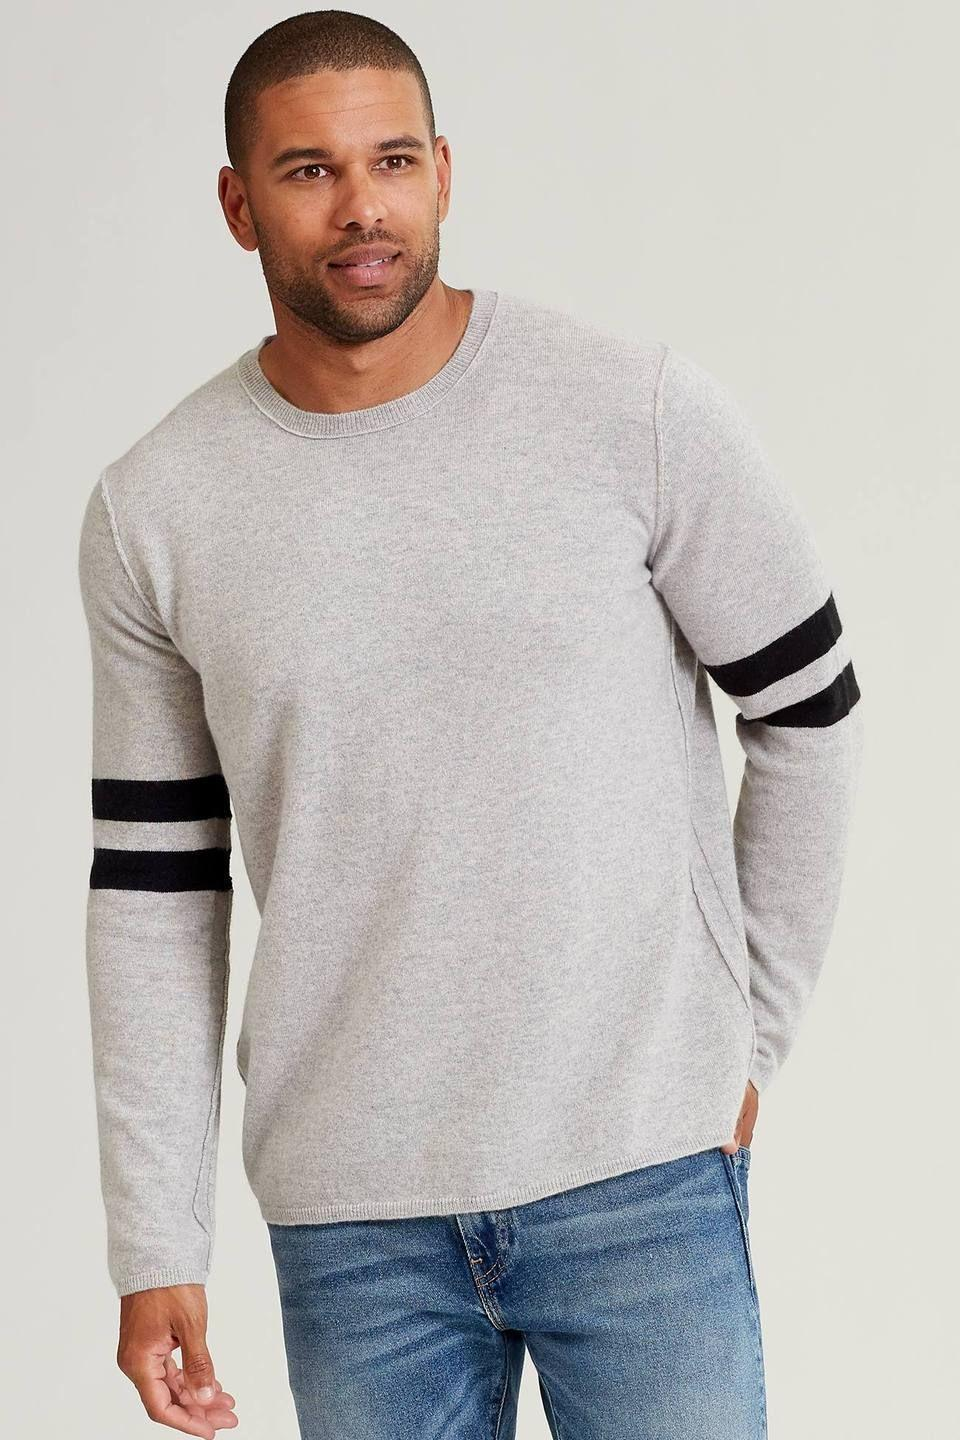 """<p><strong>Naked Cashmere</strong></p><p>nakedcashmere.com</p><p><strong>$195.00</strong></p><p><a href=""""https://go.redirectingat.com?id=74968X1596630&url=https%3A%2F%2Fwww.nakedcashmere.com%2Fproducts%2Fdavid&sref=https%3A%2F%2Fwww.cosmopolitan.com%2Fstyle-beauty%2Ffashion%2Fg27349308%2Fnew-dad-gift-ideas%2F"""" rel=""""nofollow noopener"""" target=""""_blank"""" data-ylk=""""slk:Shop Now"""" class=""""link rapid-noclick-resp"""">Shop Now</a></p><p>He'll be the coziest and most stylish dad around wearing his new cashmere sweater. </p>"""